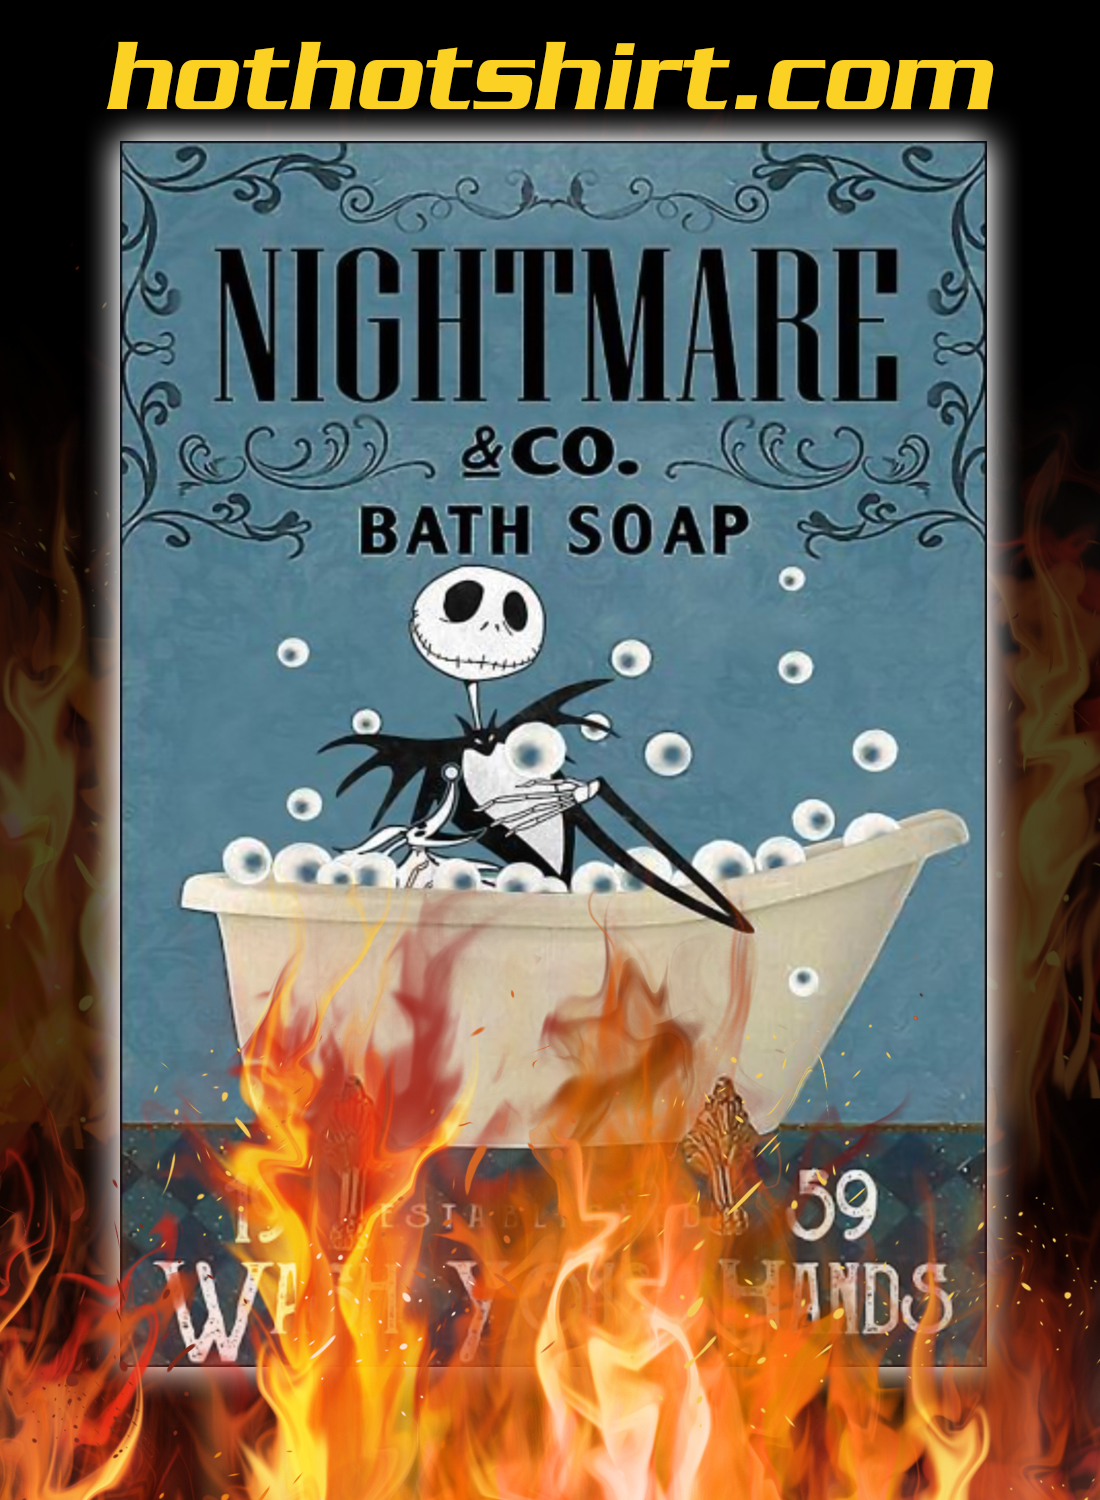 Nightmare Co Bath Soap Wash Your Hands Poster - A2